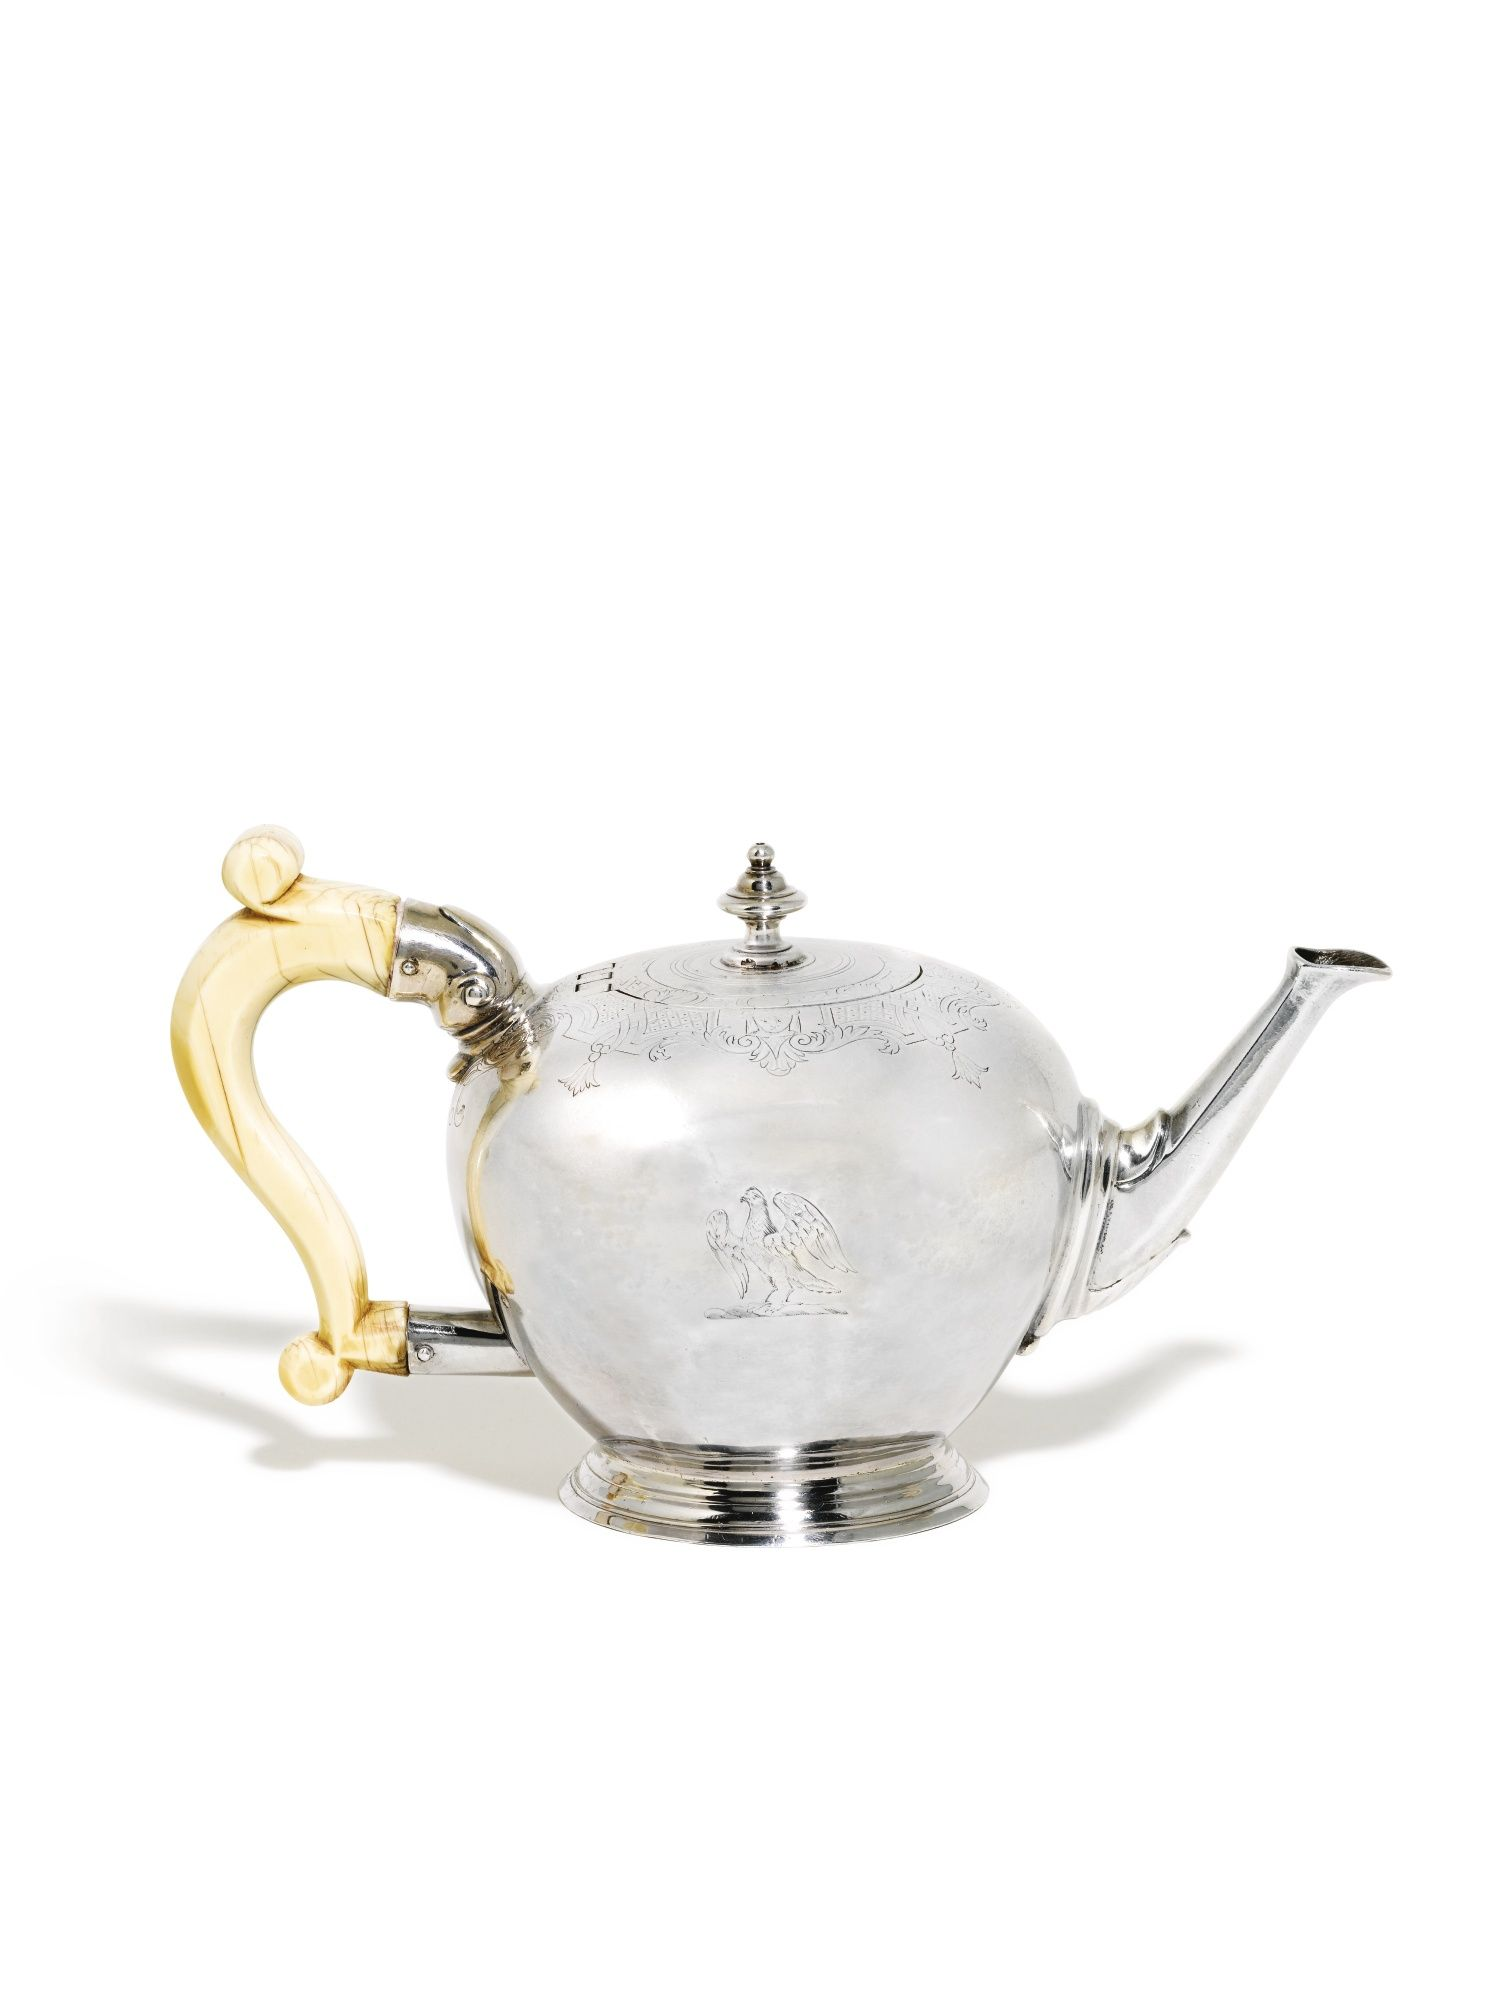 A George I silver bullet-shaped teapot, William Fawdery, London, 1723